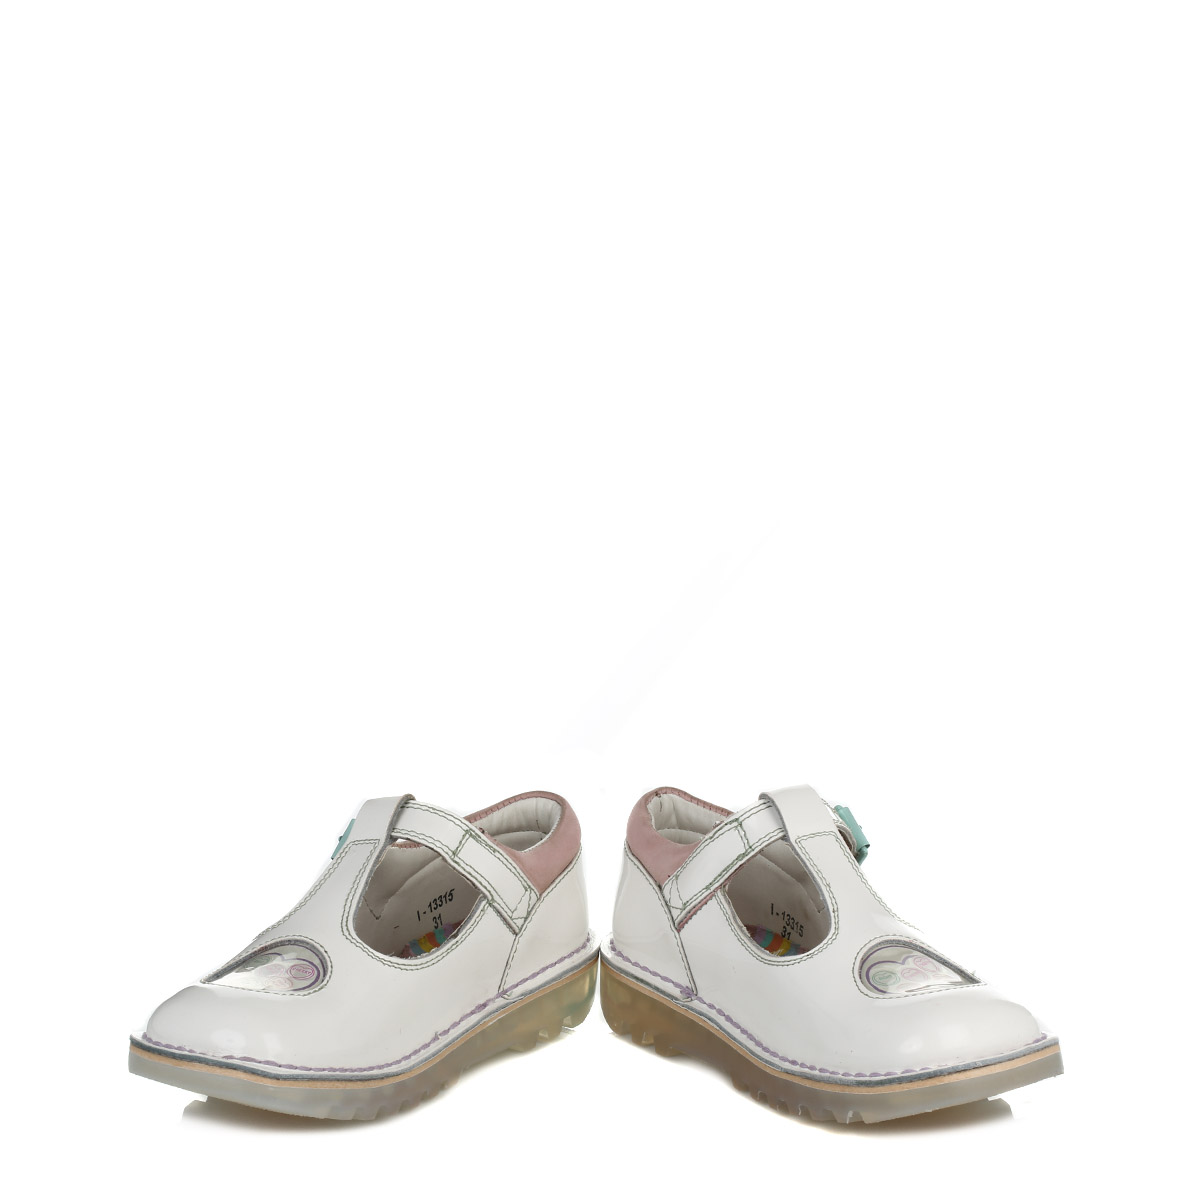 kickers white kick t bar leather shoes buckle